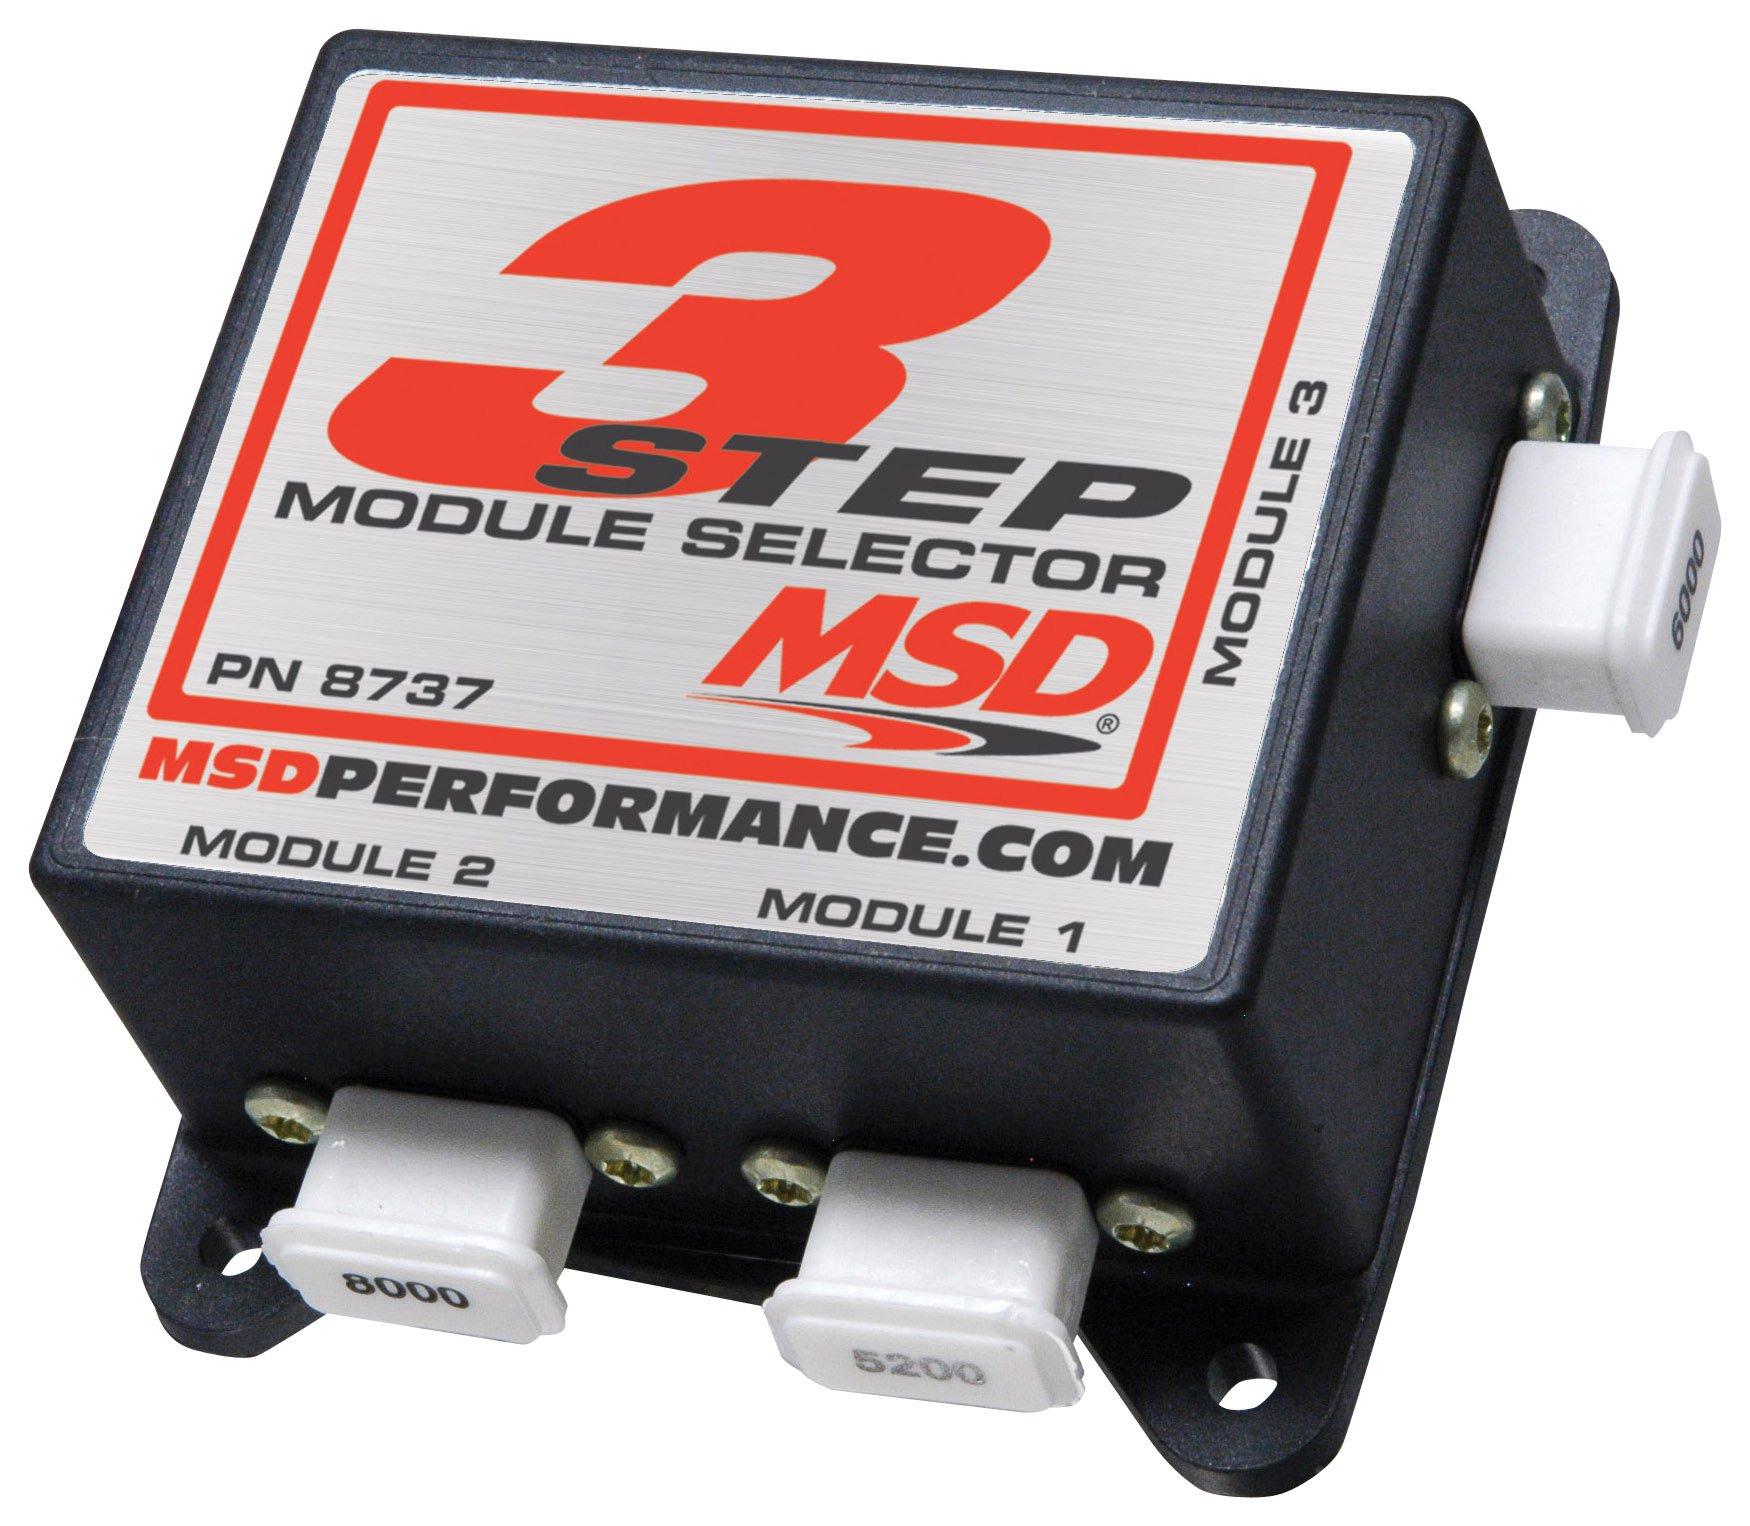 8737 - Three Step Module Selector Image